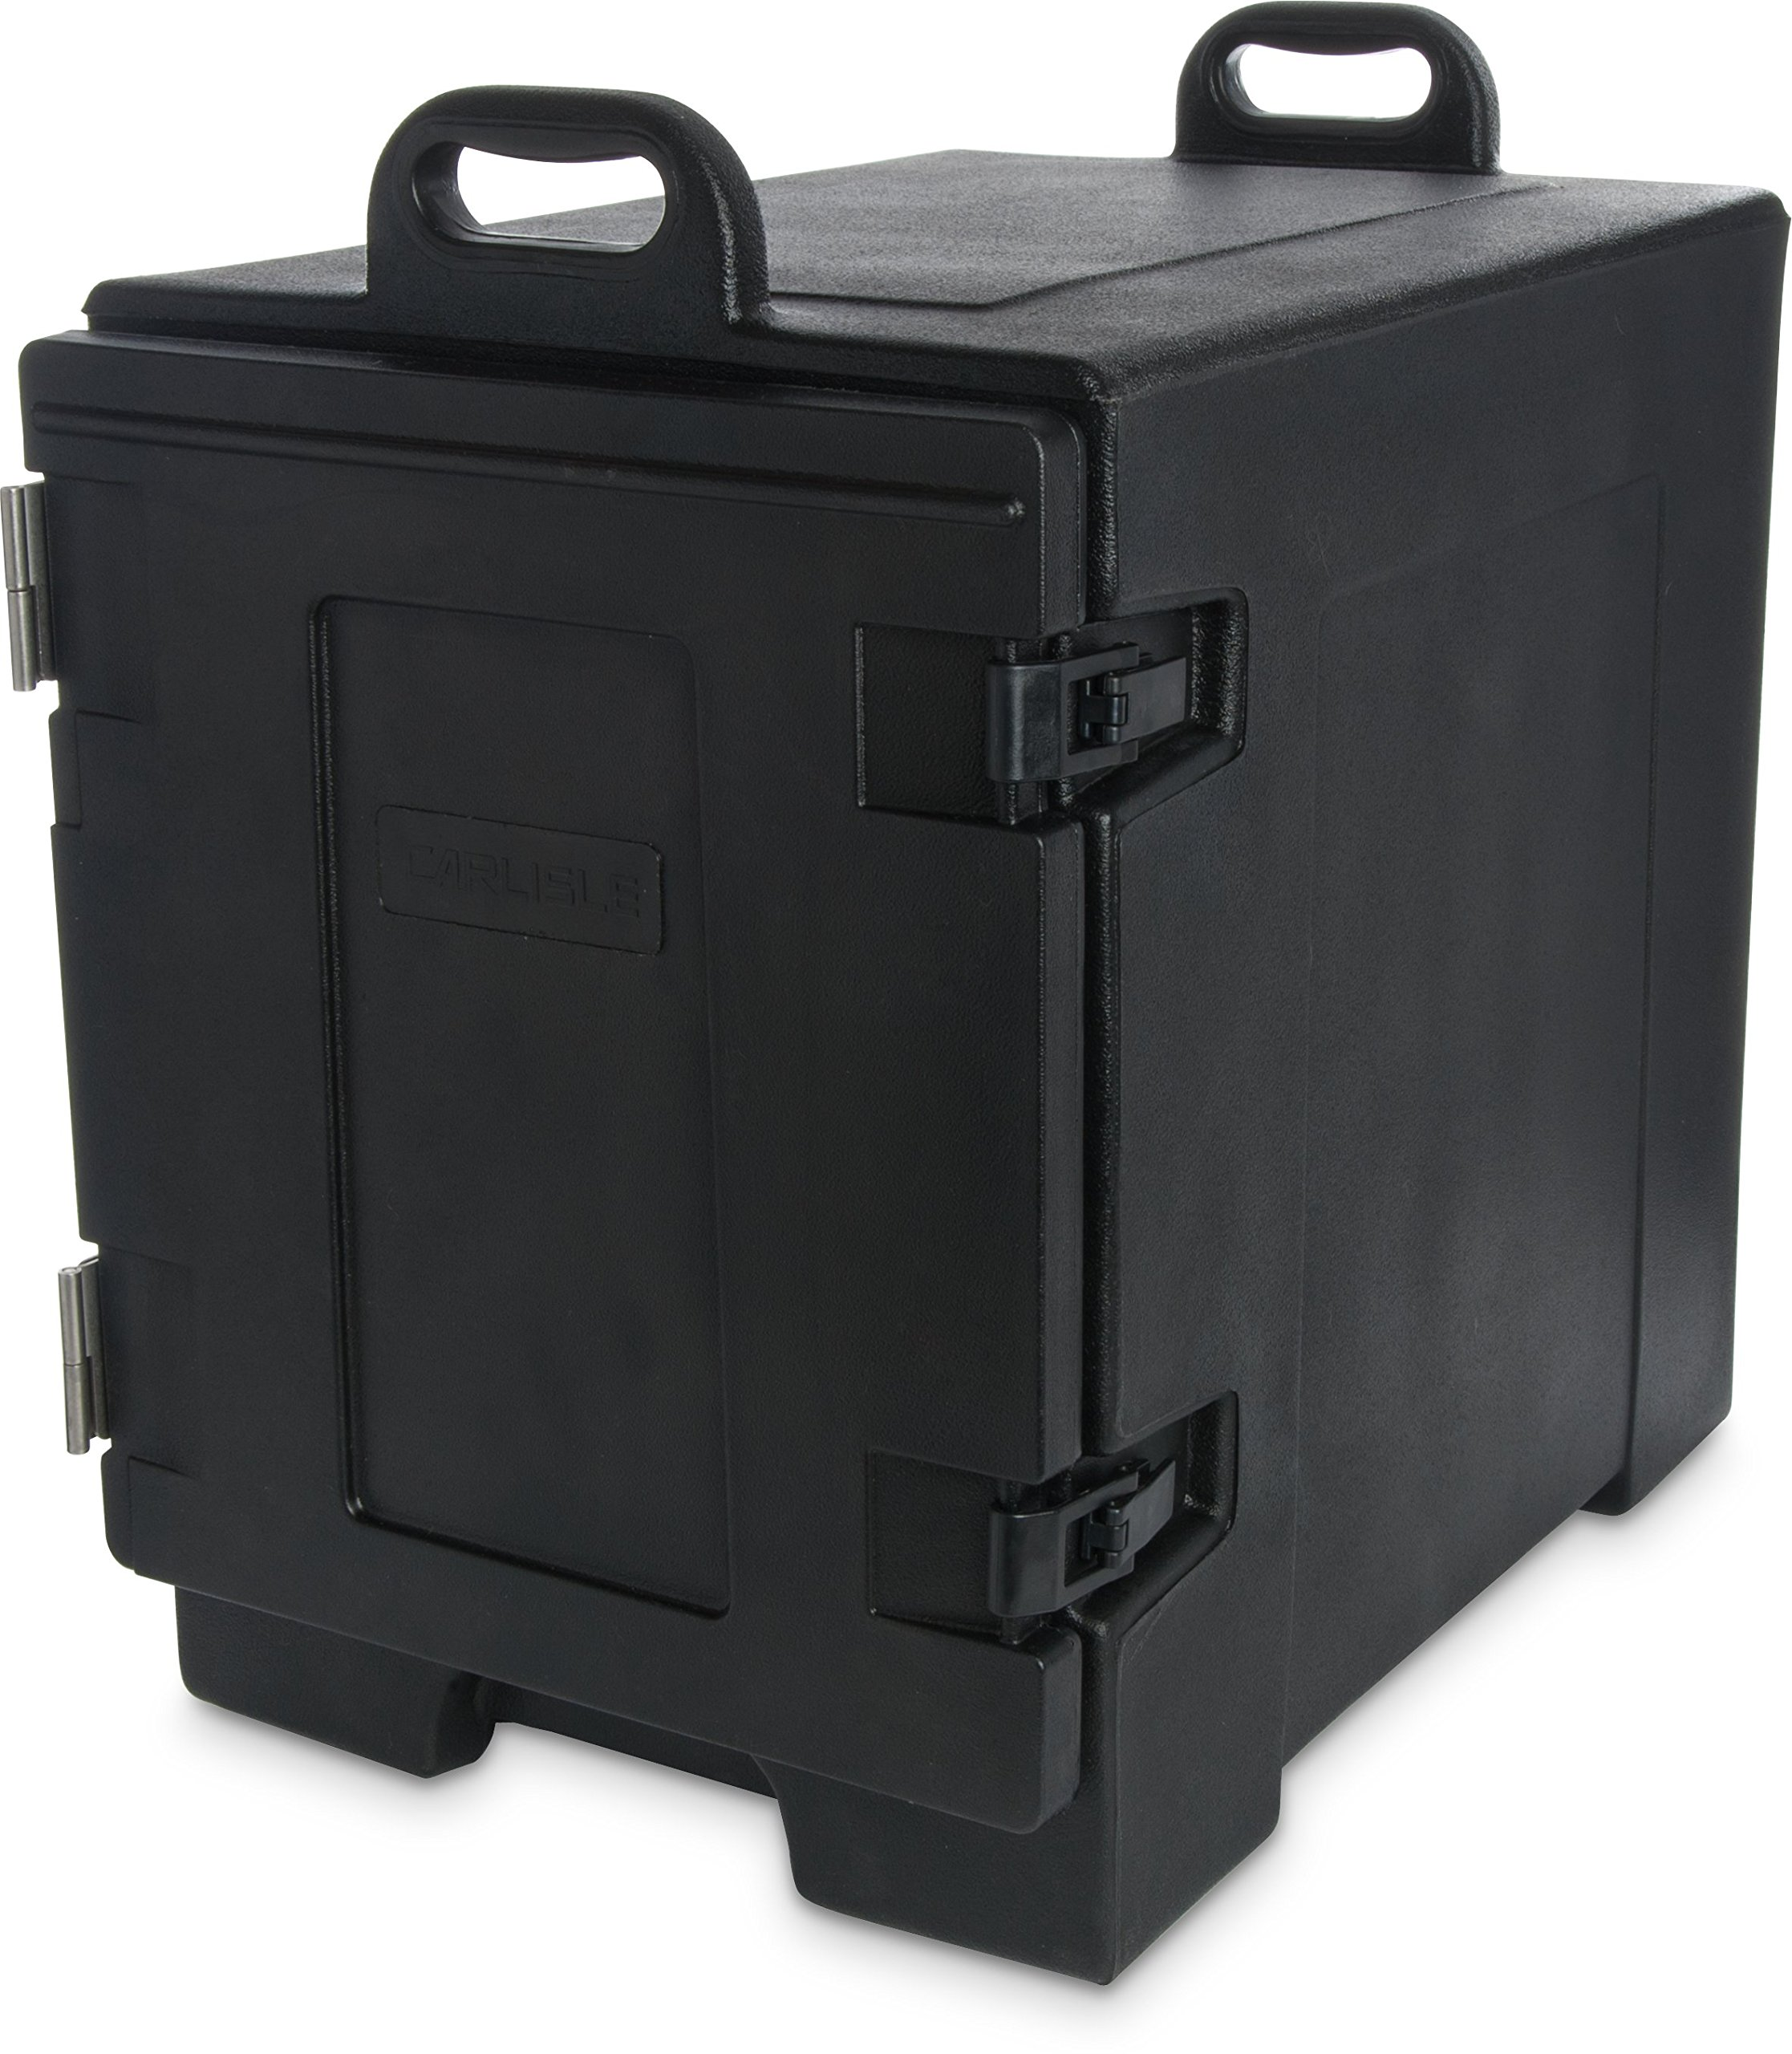 Carlisle PC300N03 Cateraide End-Loading Insulated Food Pan Carrier, 5 Pan Capacity, Black